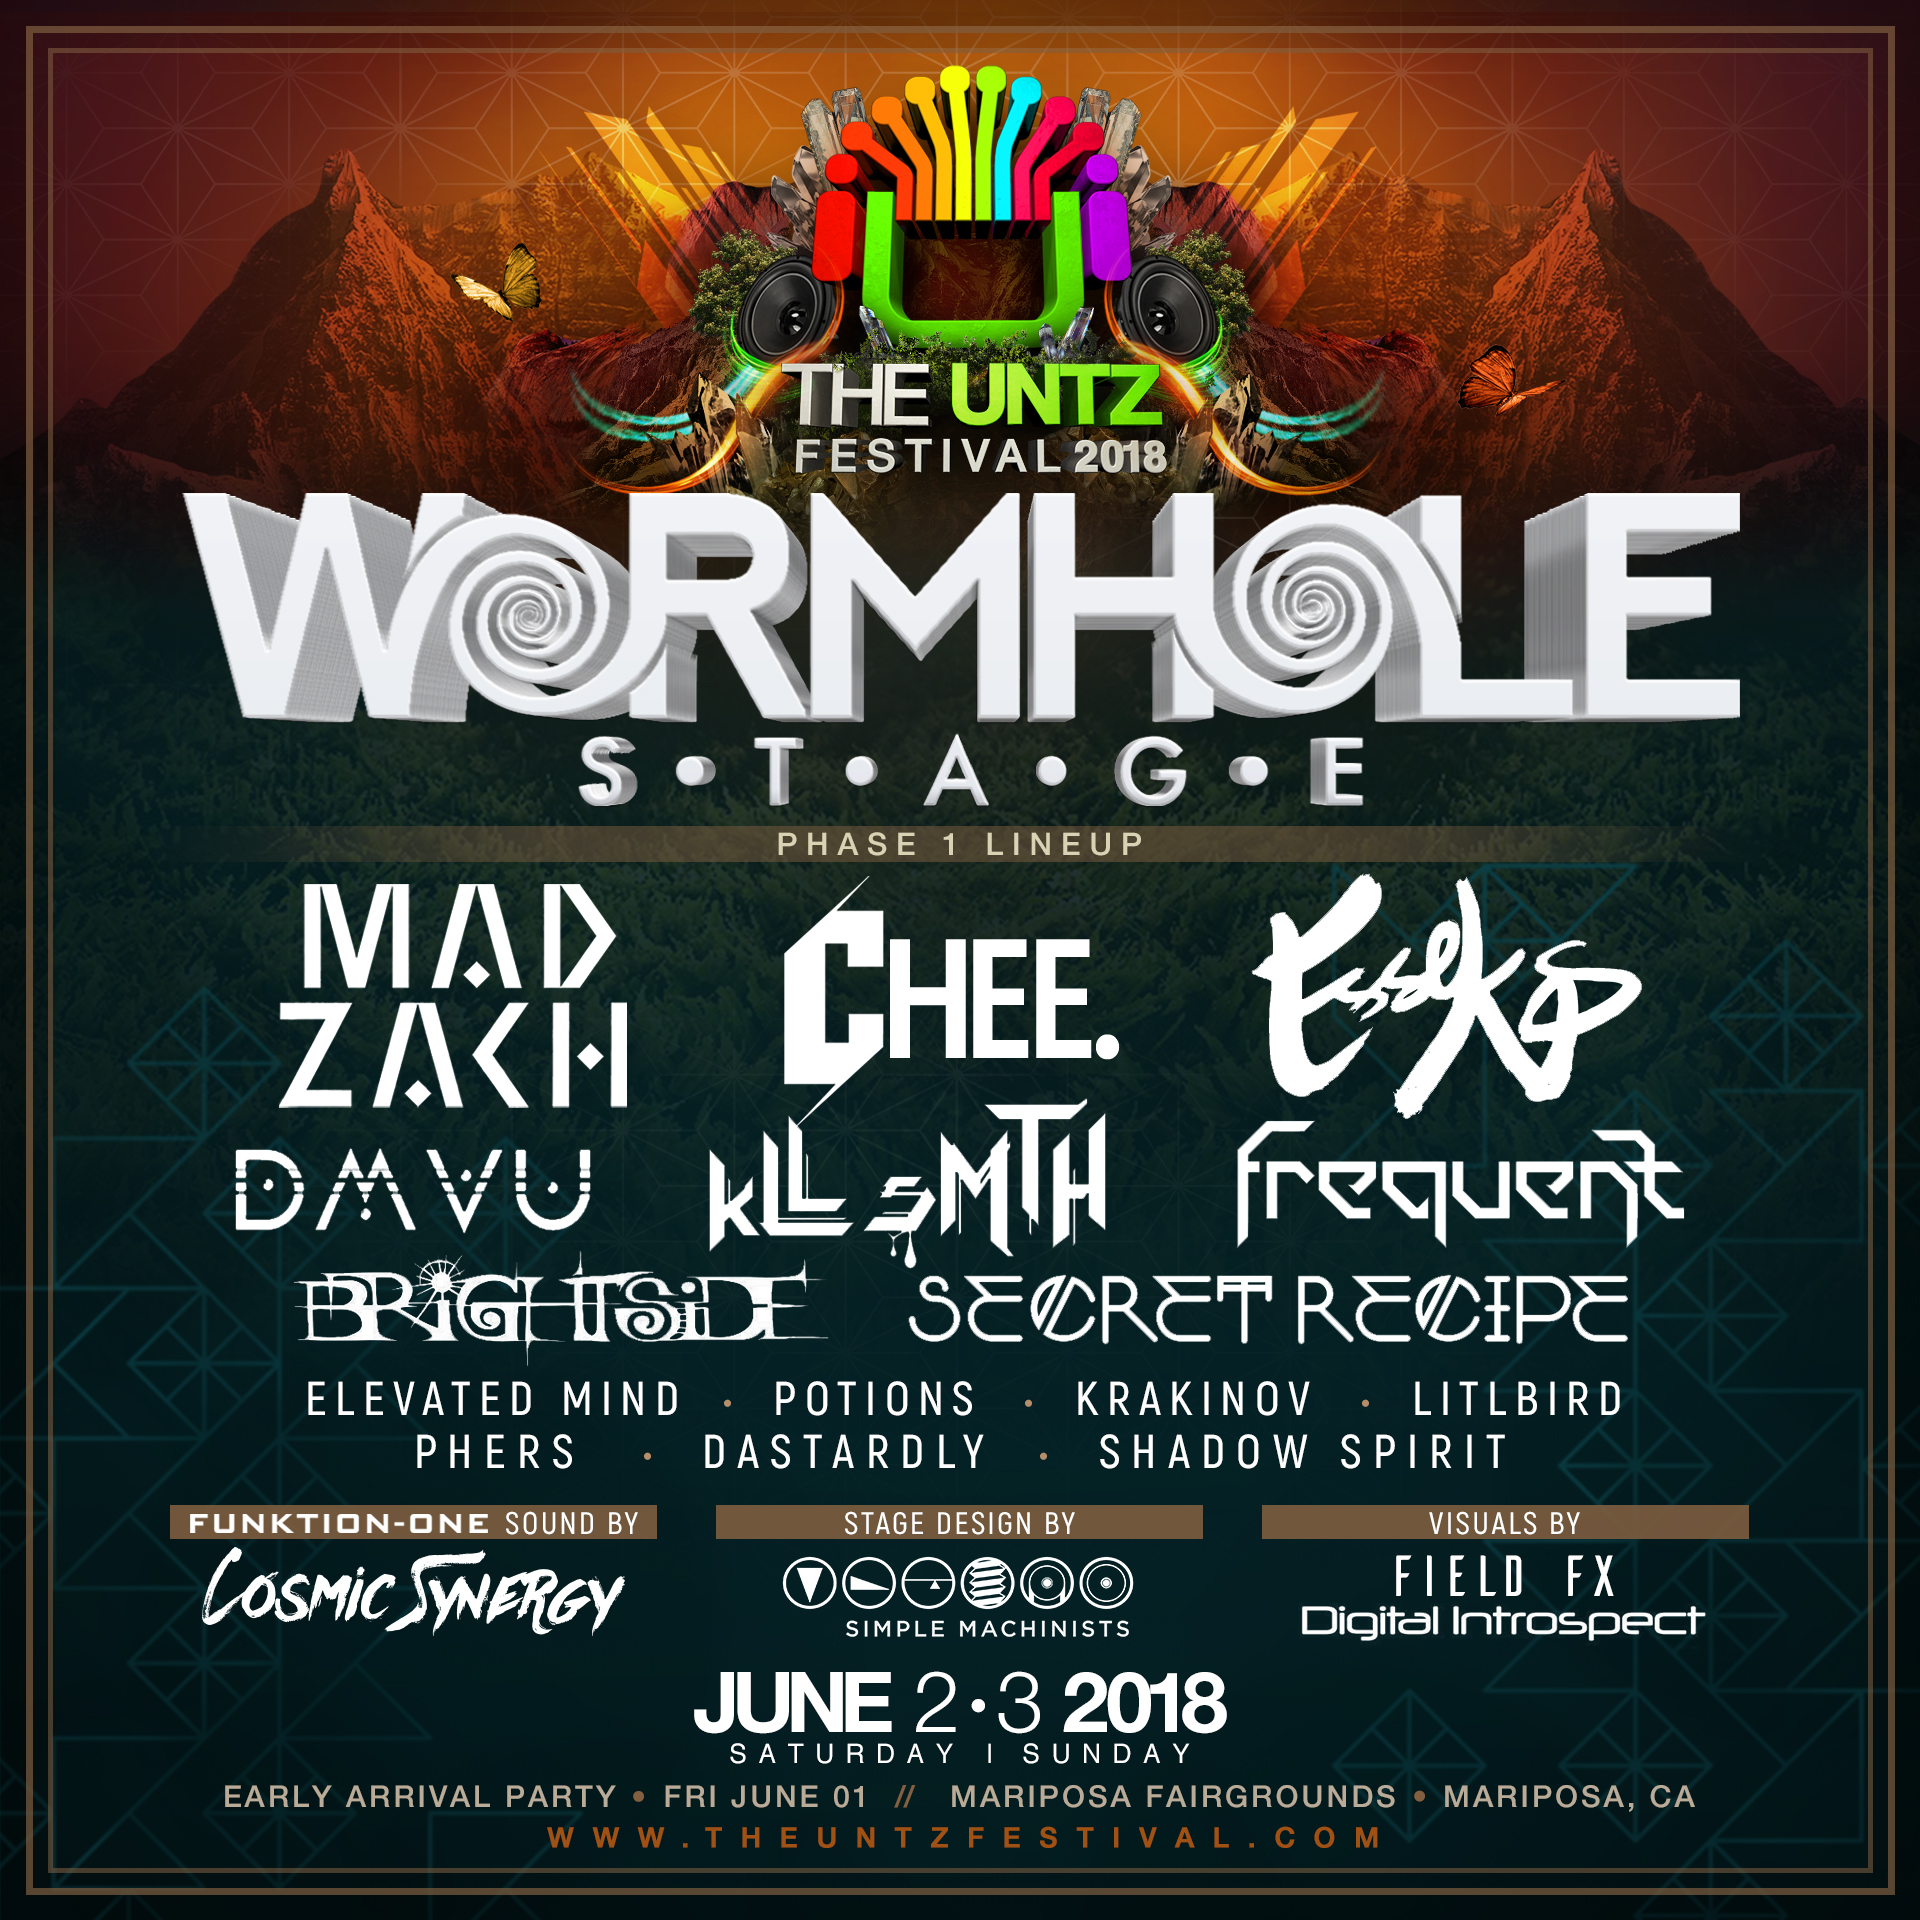 Wormhole The Untz Festival 2018